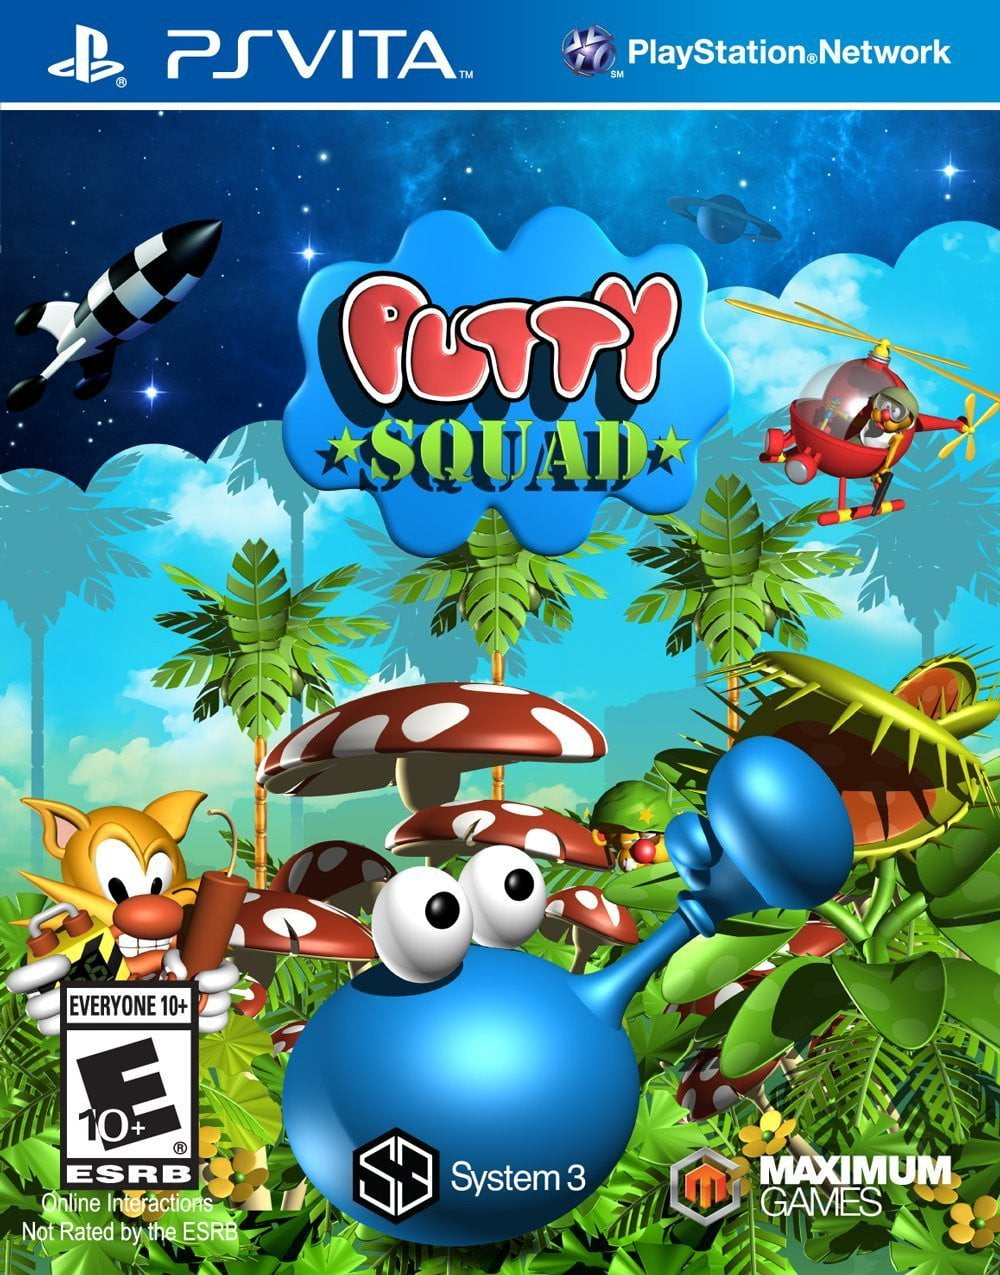 Buy Putty Squad PS Vita in Egypt - Shamy Stores